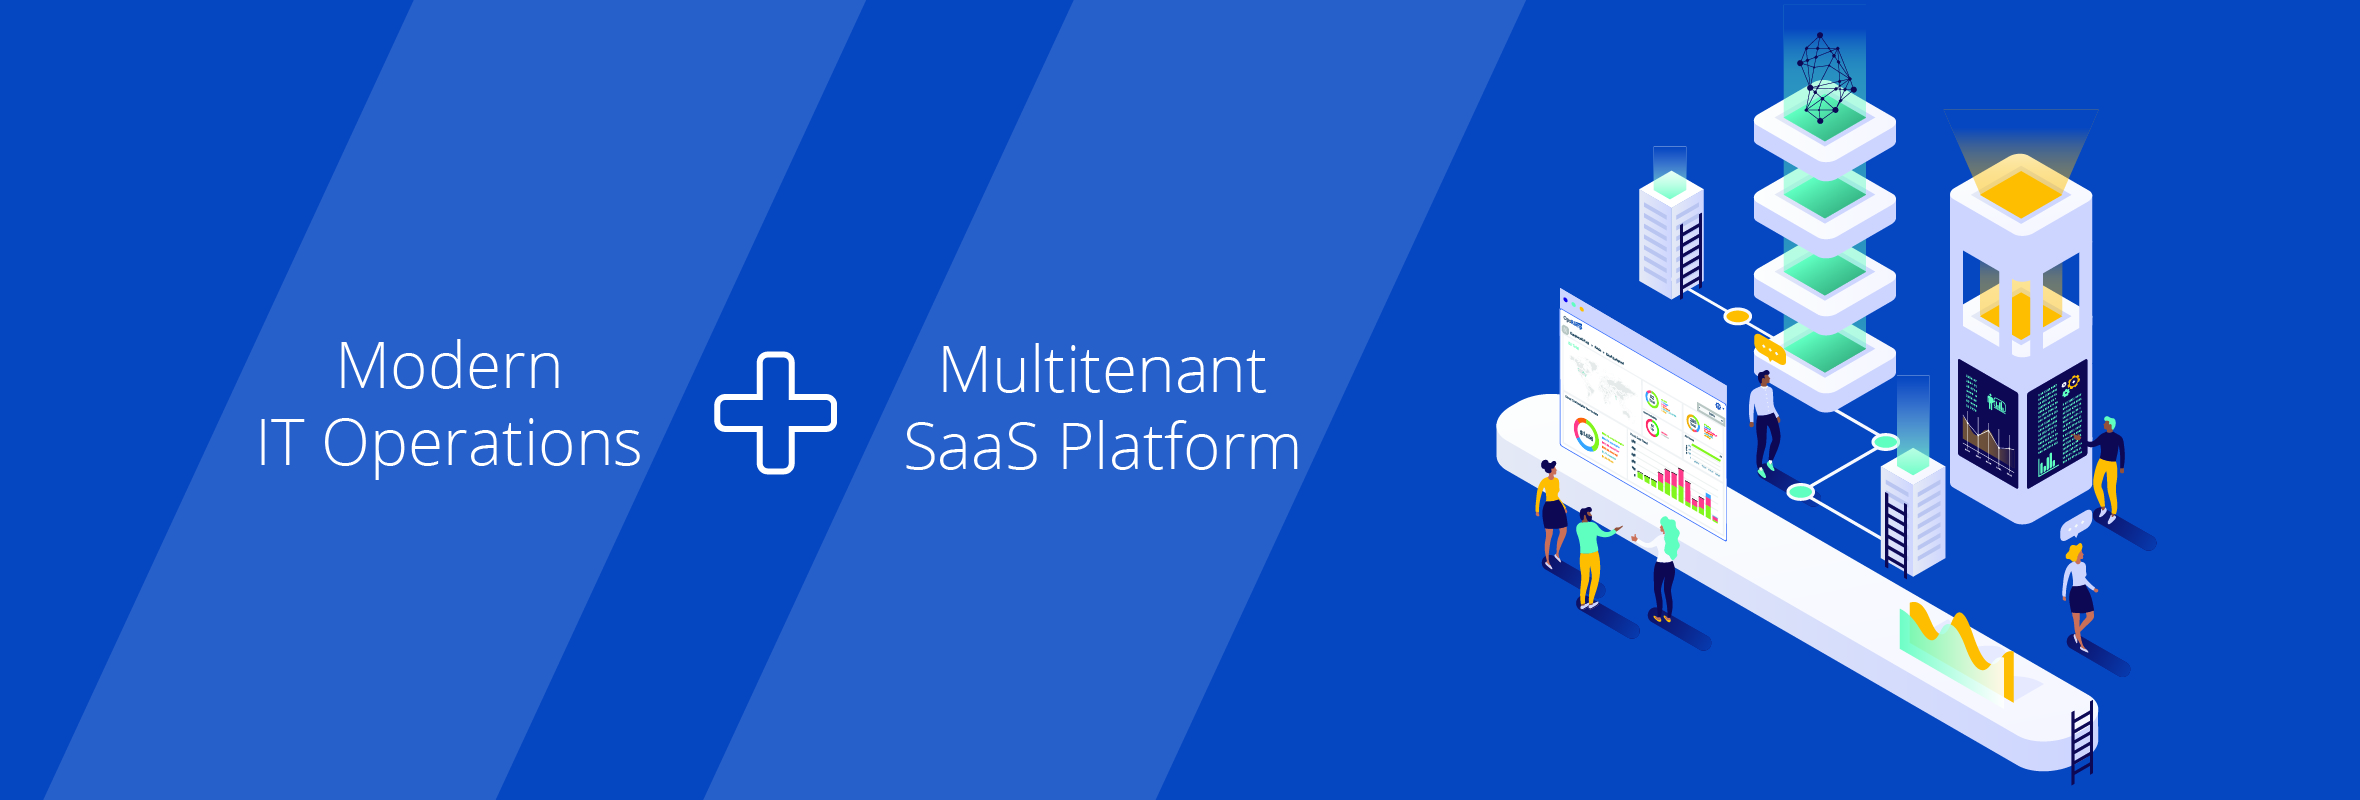 Modern IT Operations + Multitenant SaaS Platform: Better Productivity, Faster Updates, and Lower Costs For Enterprise IT